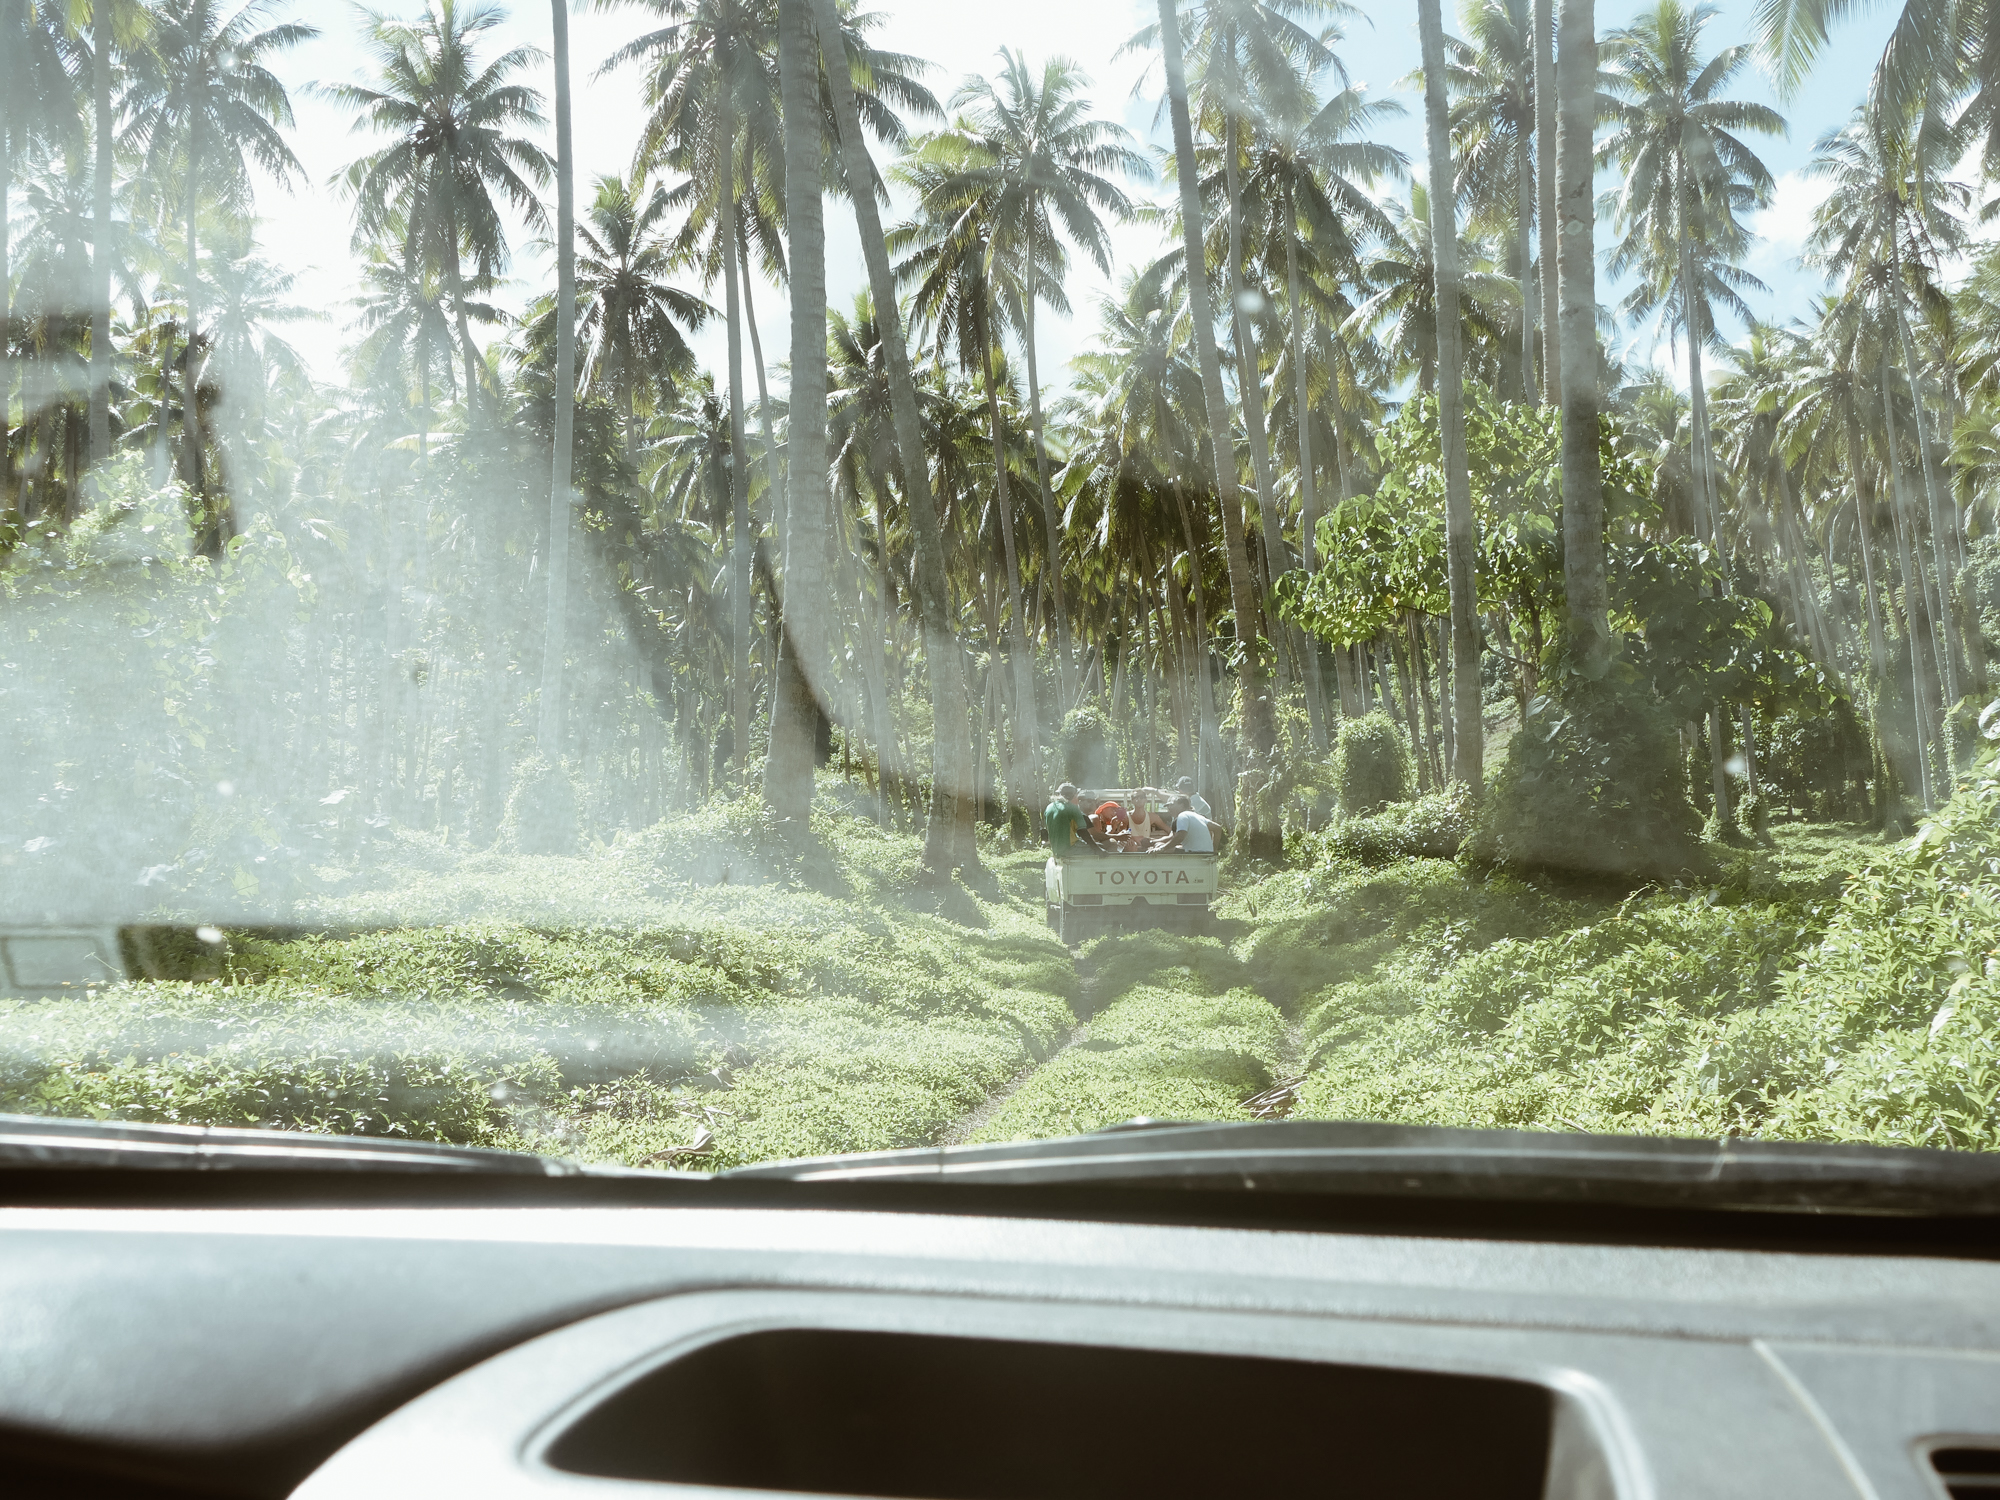 Driving through the jungle in Pentecost Island, Vanuata, South Pacific.